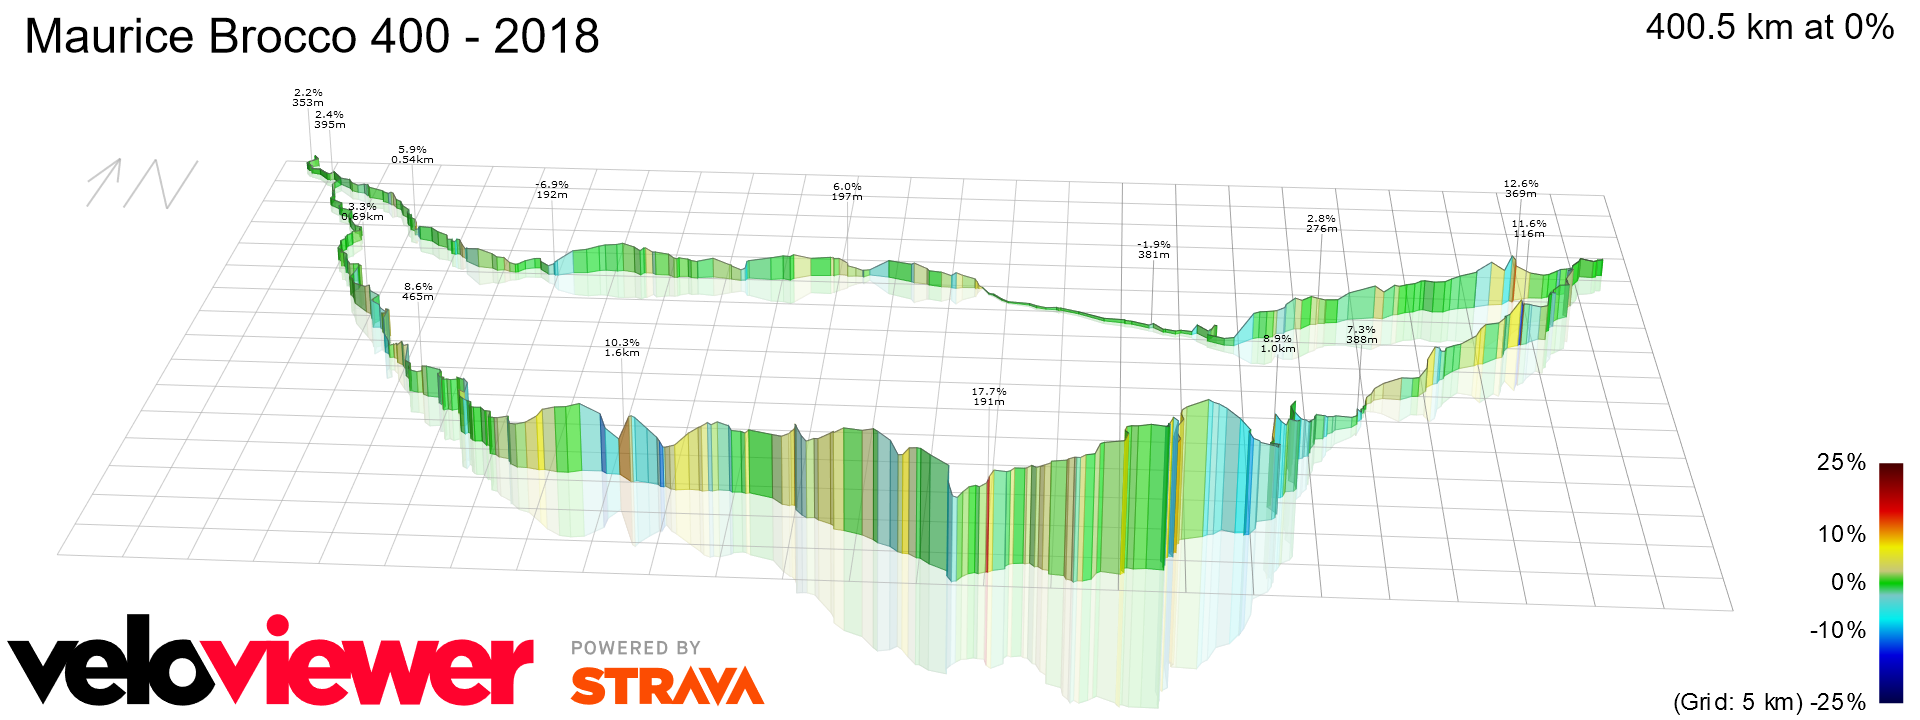 3D Elevation profile image for Maurice Brocco 400 - 2018